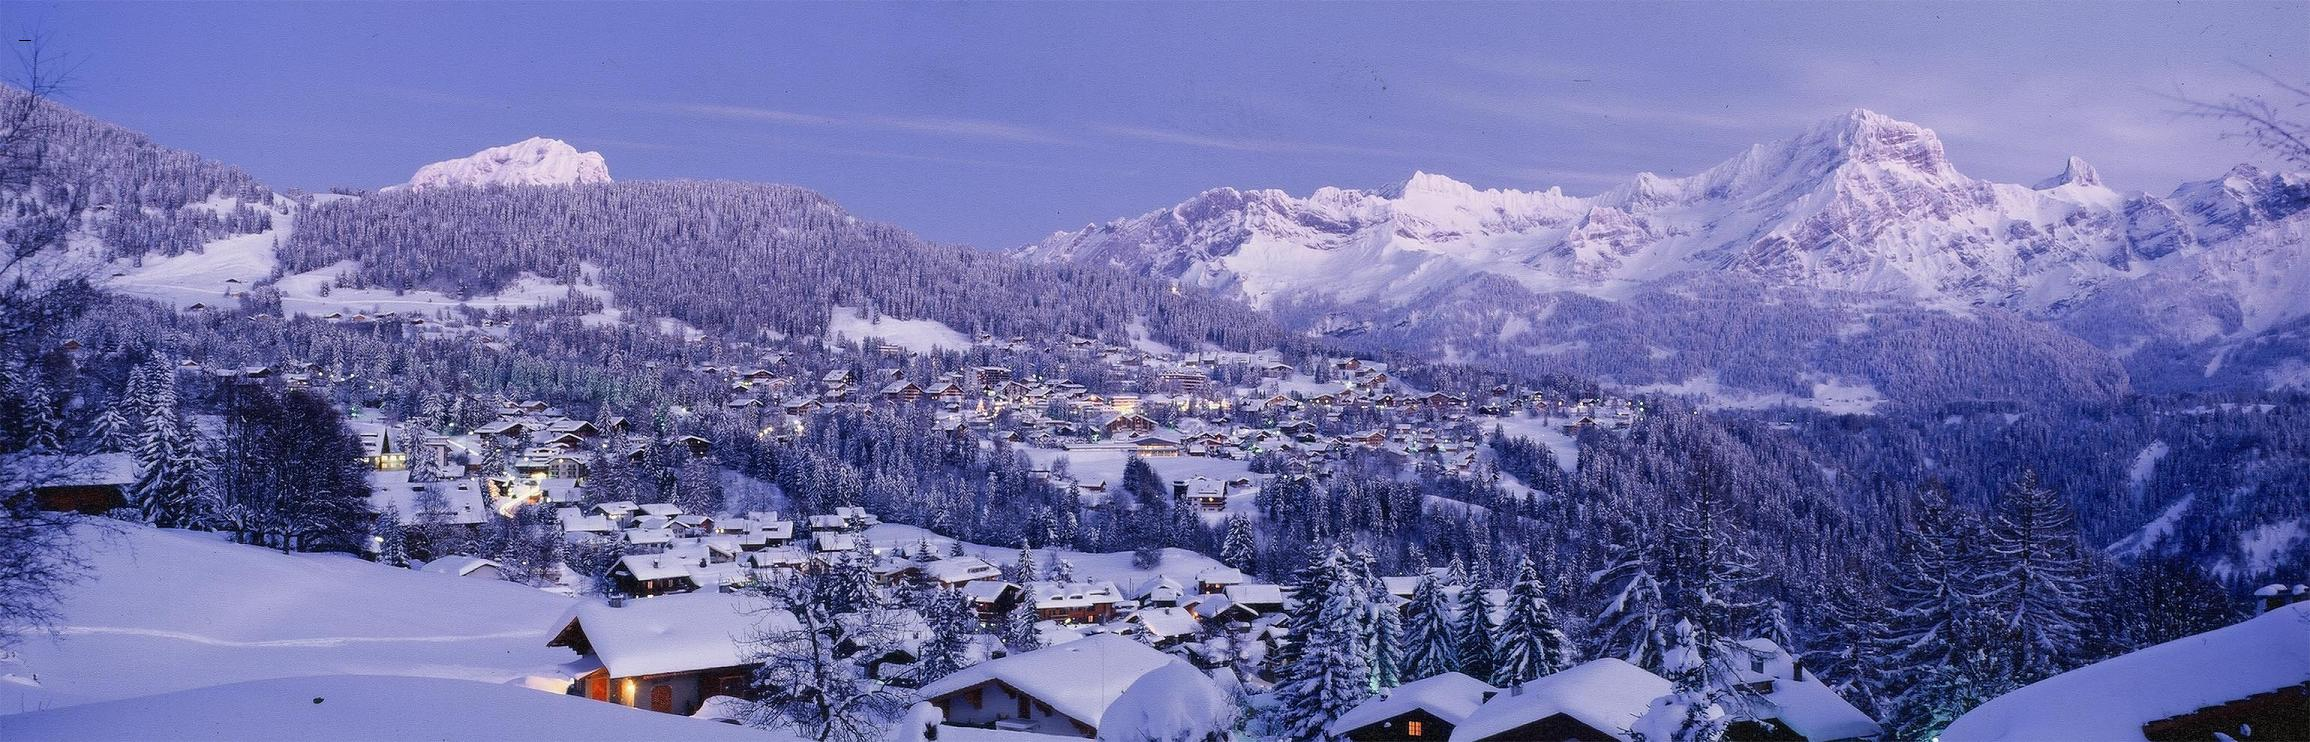 Villars